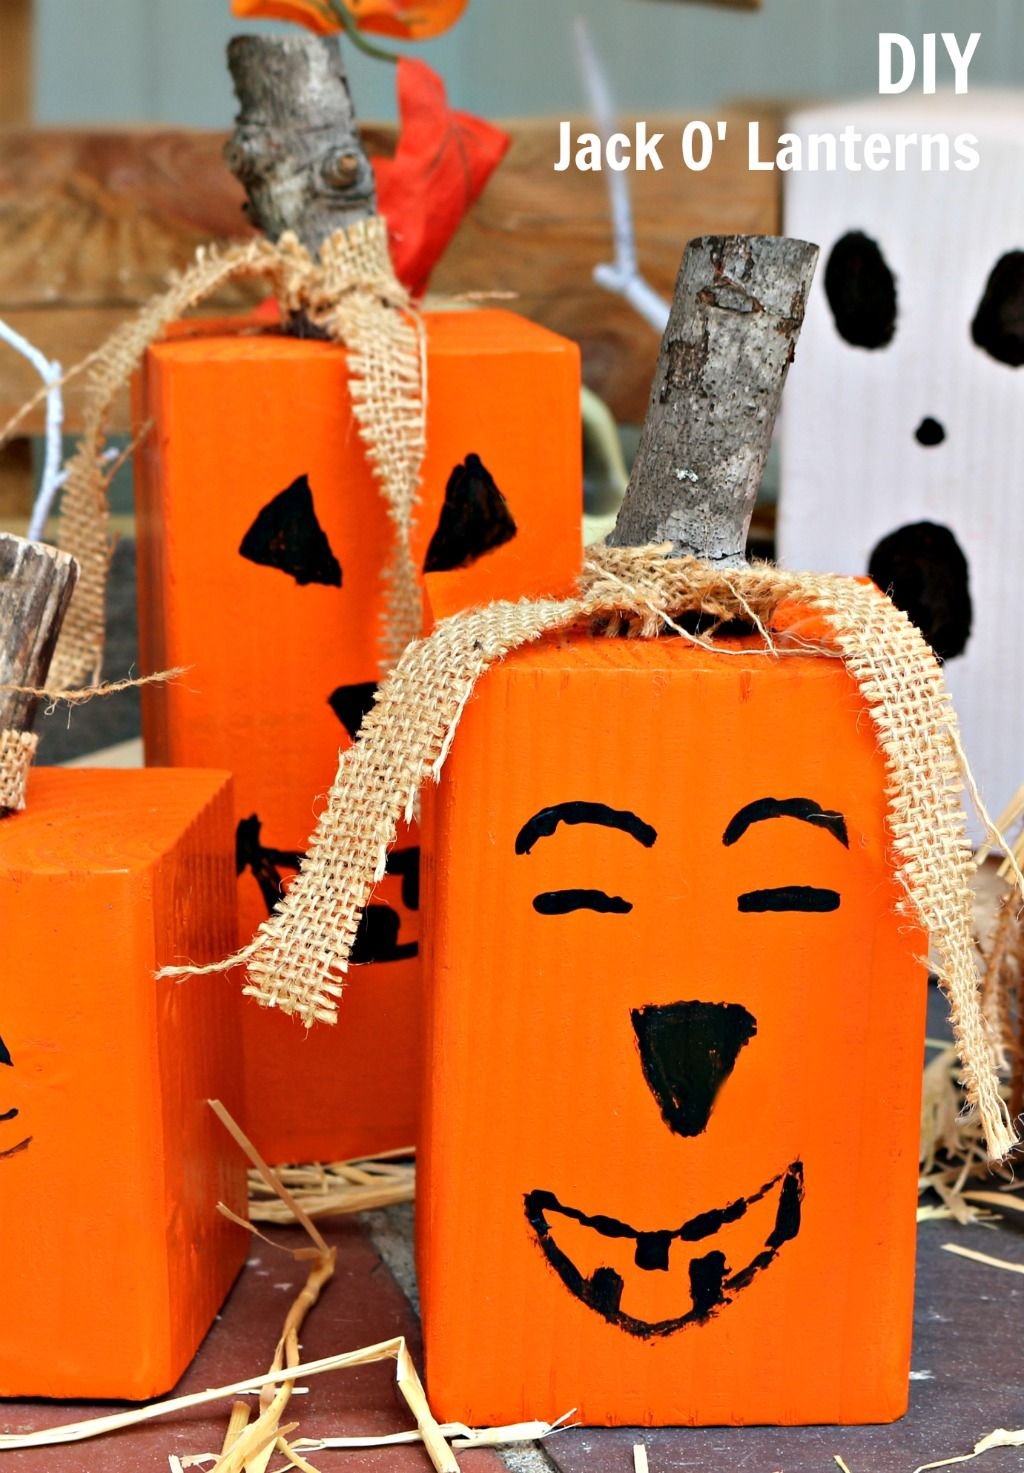 Learn Step By Step How To Build A Diy Jack O Lantern